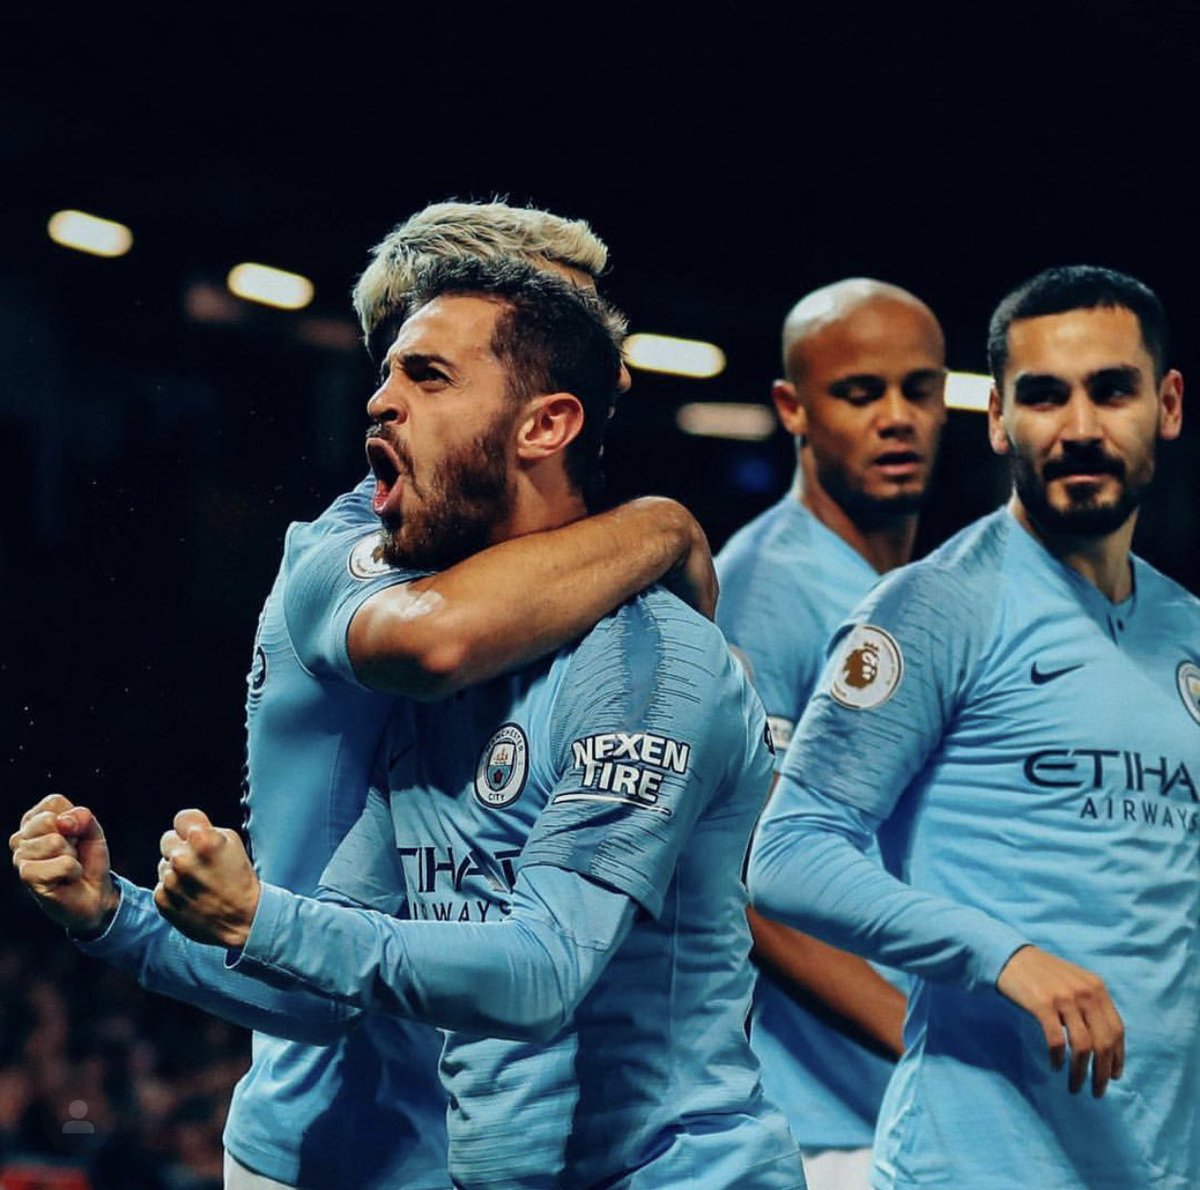 COME ON! Massive win tonight! Sunday there's another one! 🔵🔵